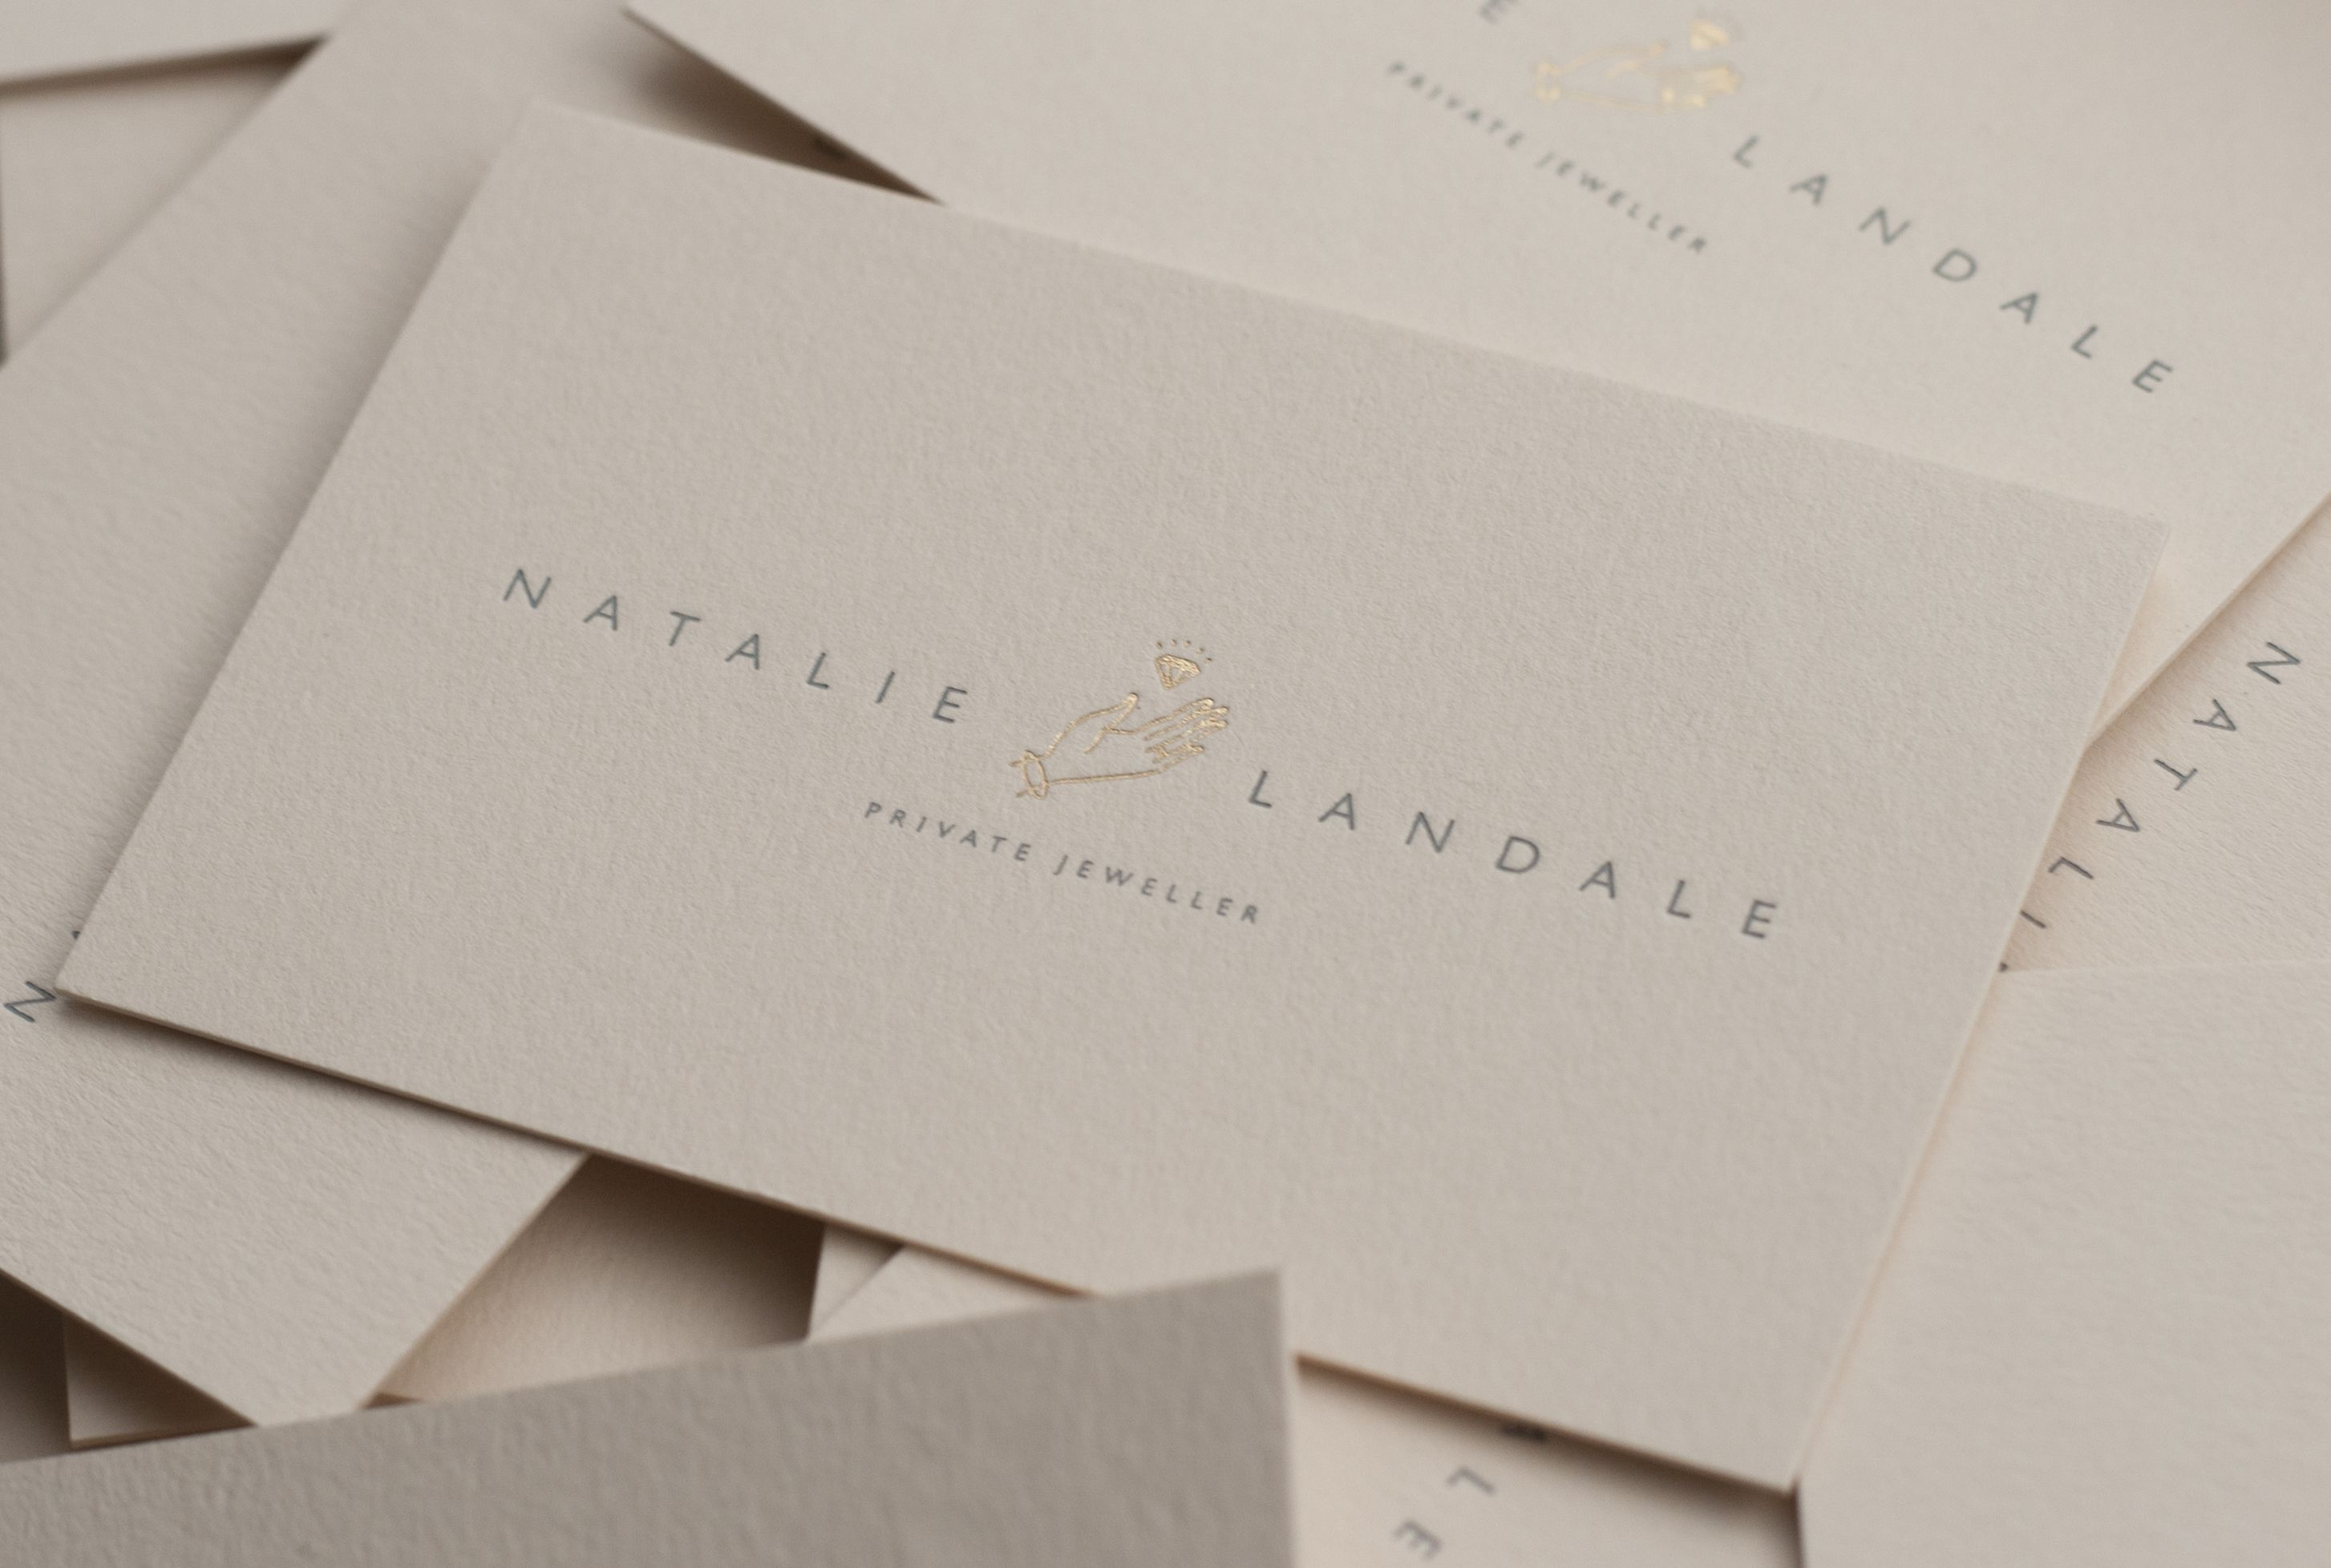 Two colours #foilblocking Business cards printed for Natalie Landale ...